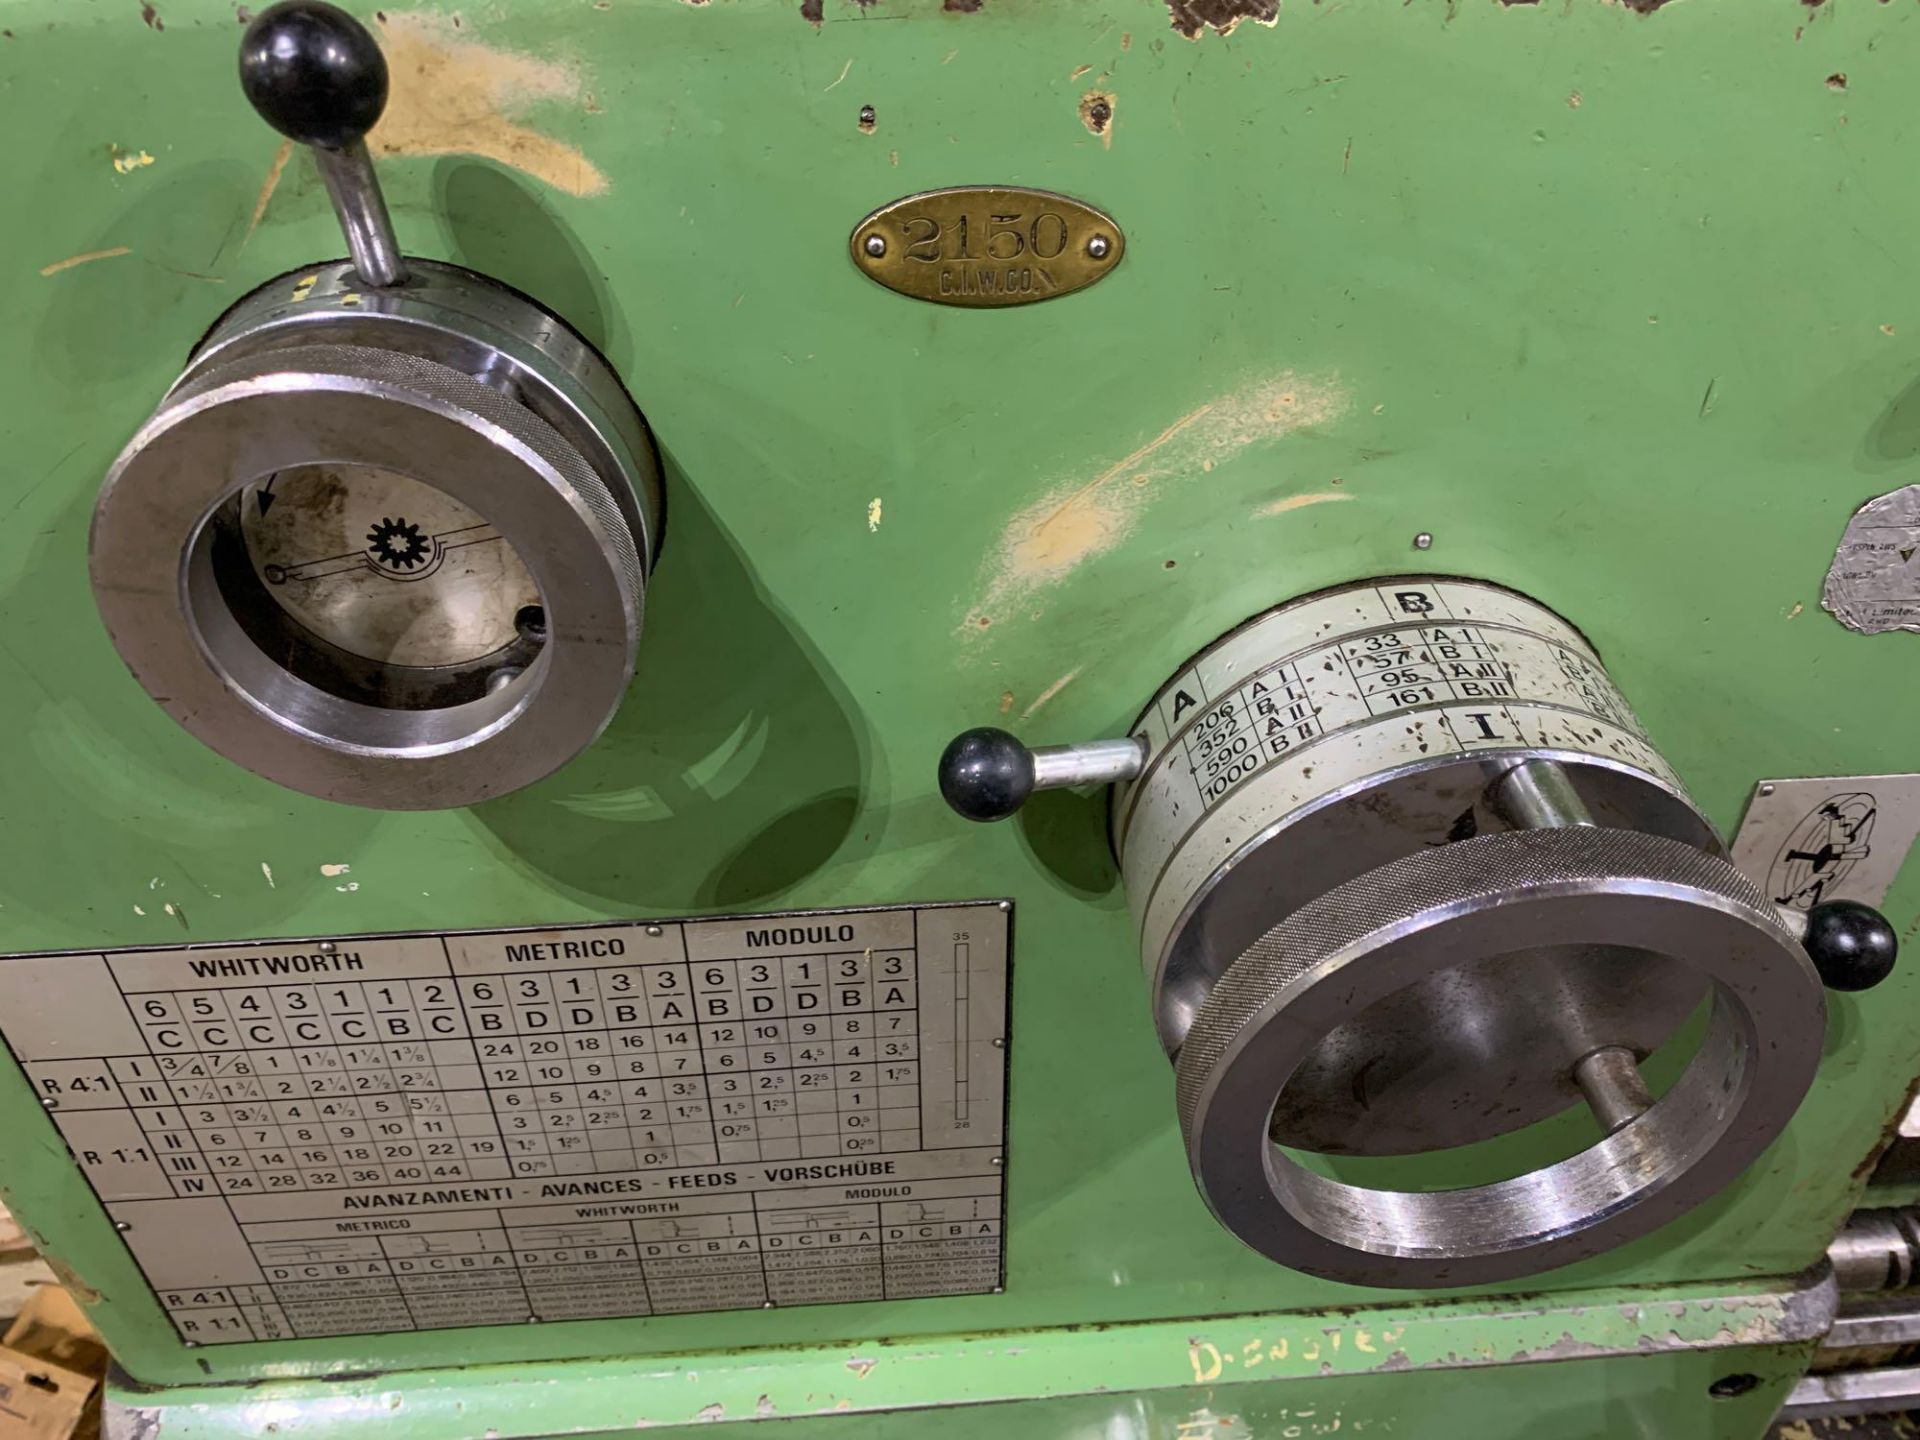 """Est Ticino Heavy Duty Gap Bed Engine Lathe Model: ETS-350 Serial Number: 1943 Rated Capacity: 27"""" x - Image 8 of 31"""